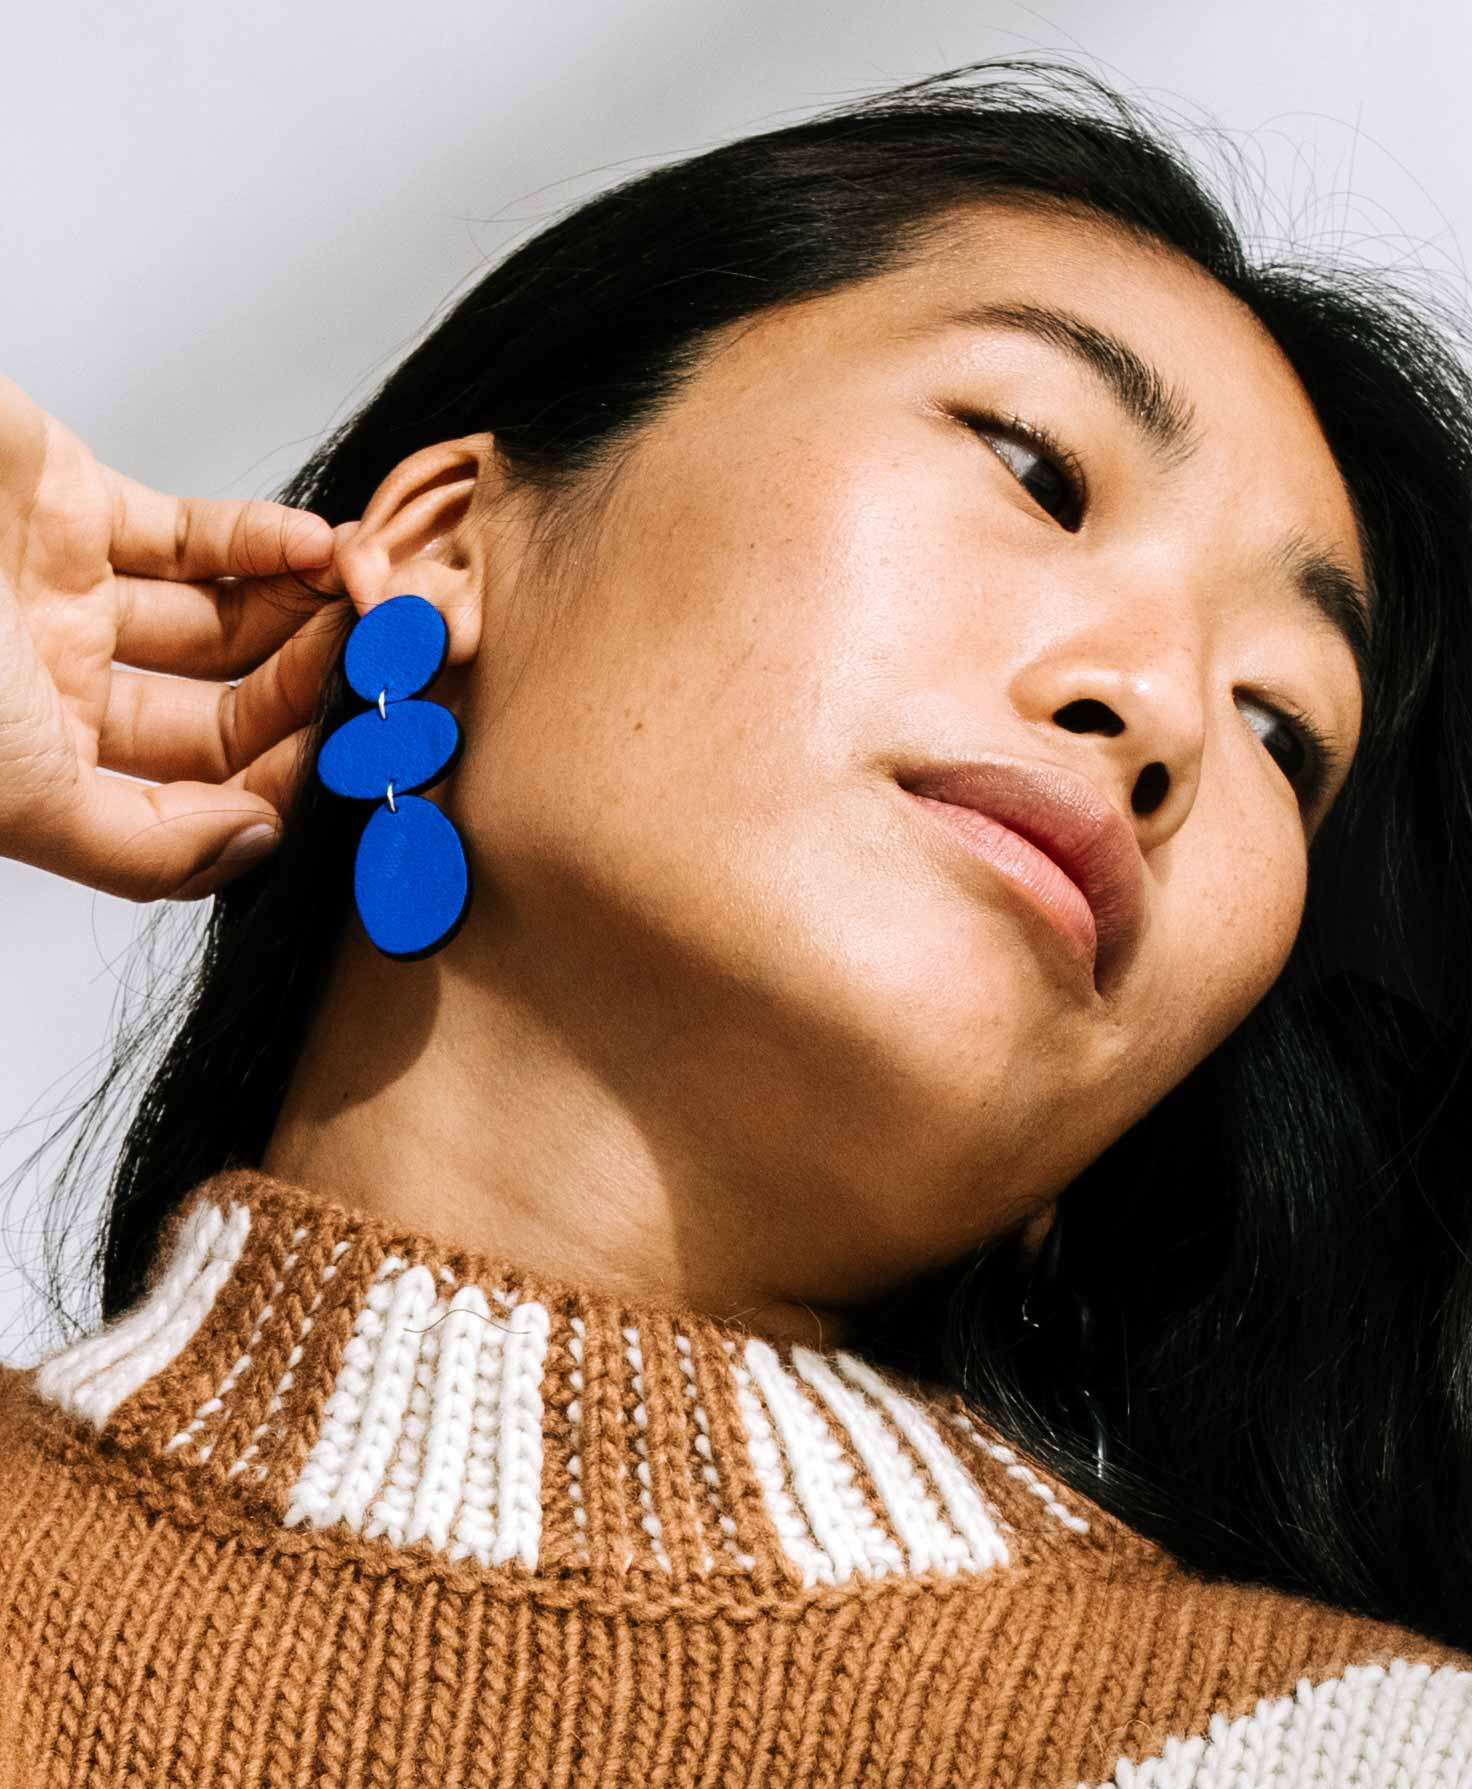 A model wears the Lupine Earrings. Their length and bright cobalt color make them stand out against her neutral tan dress.